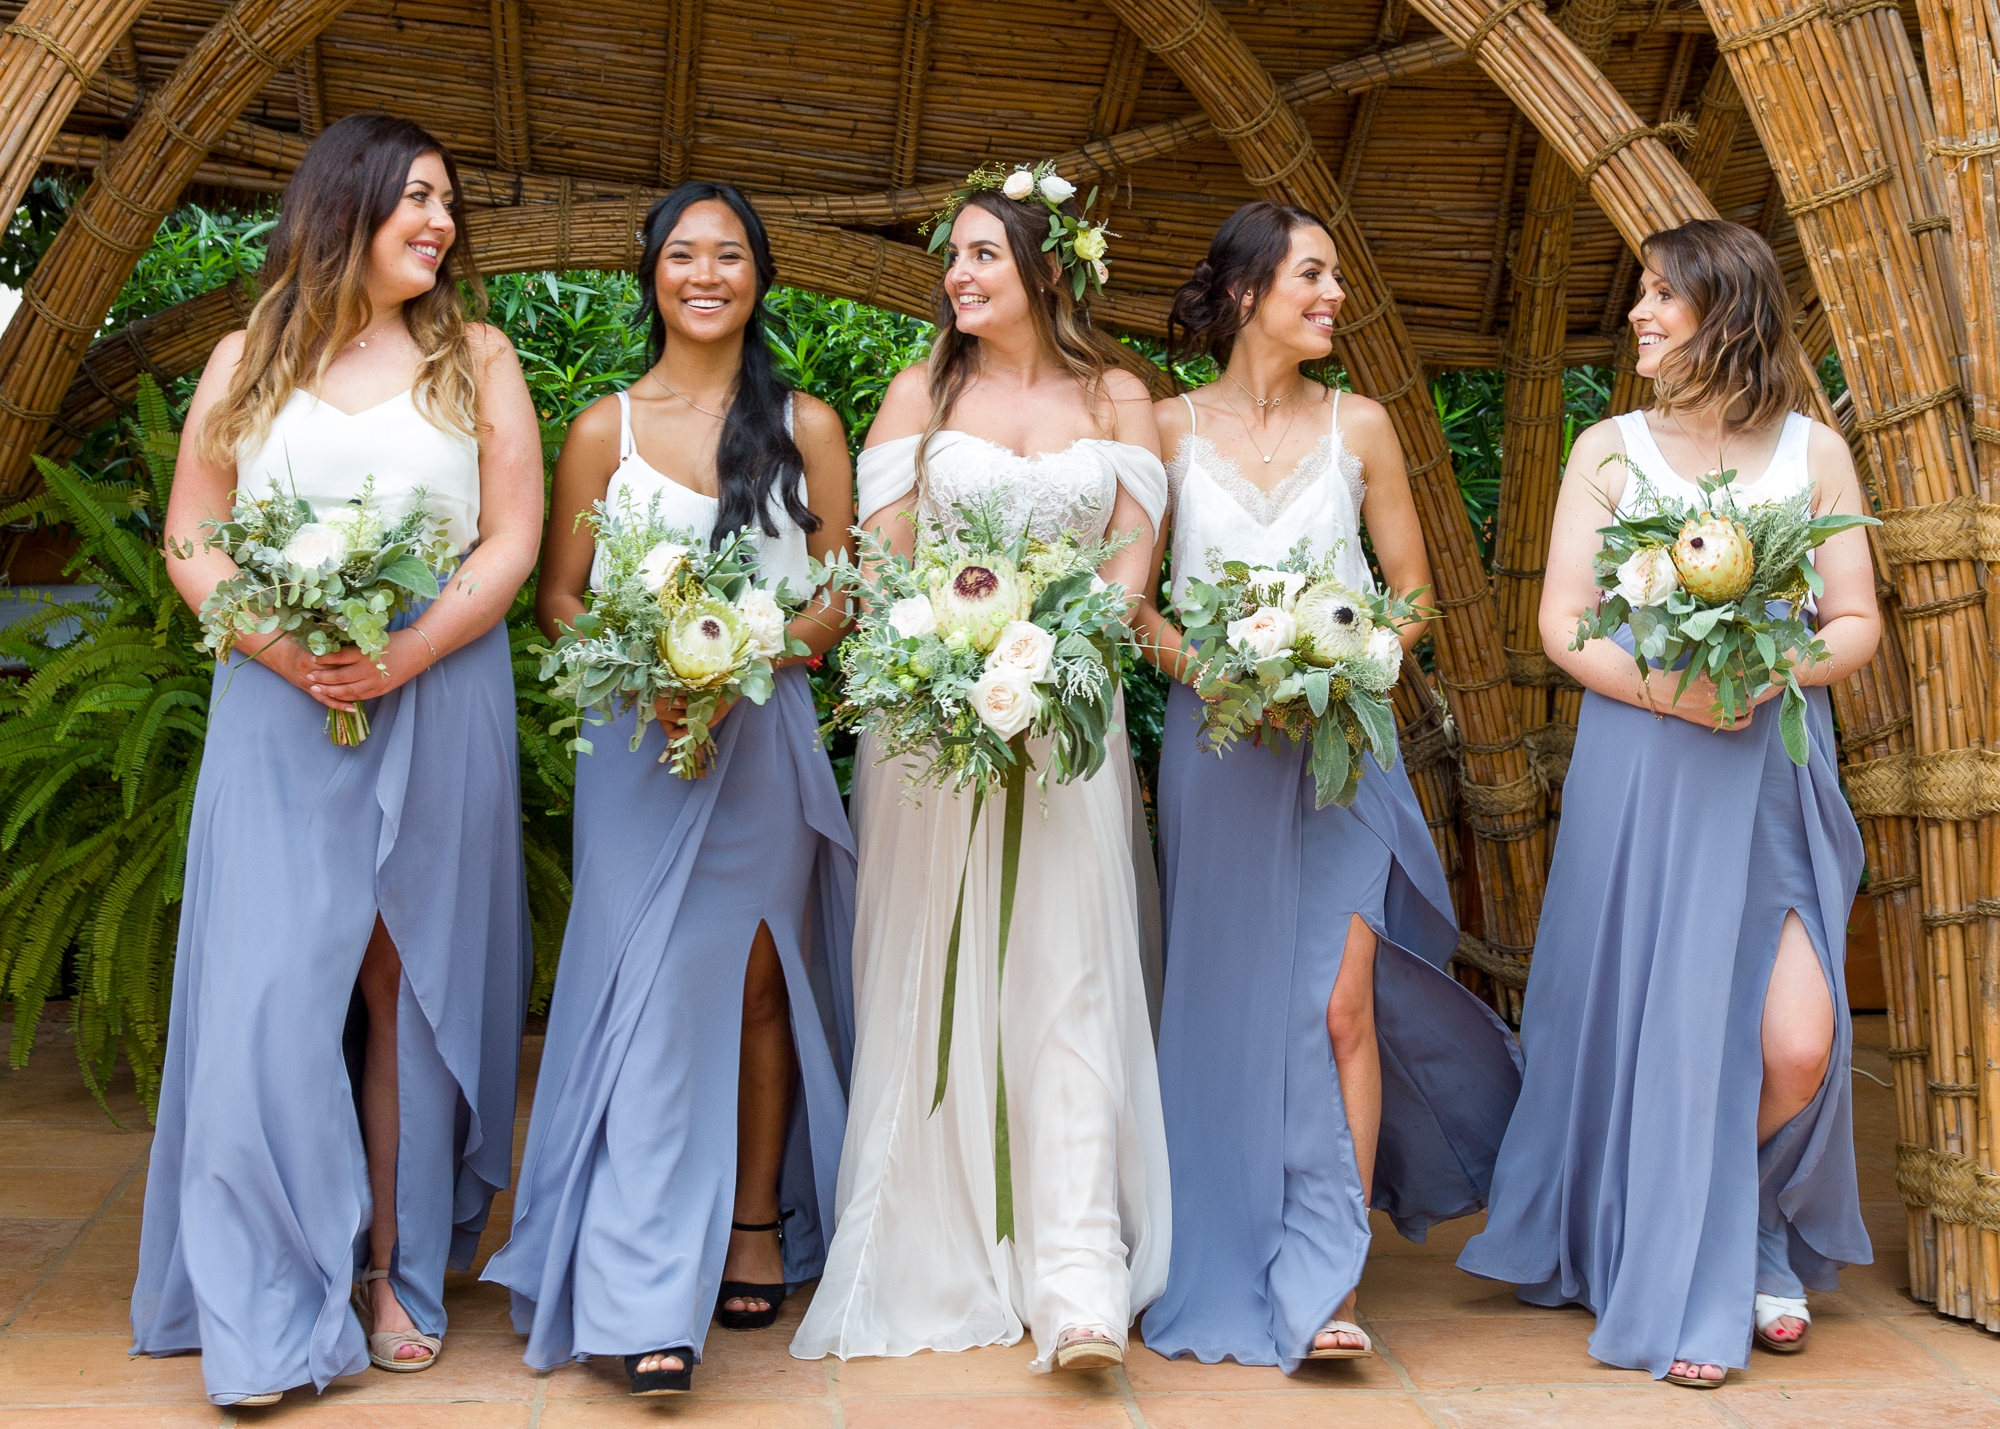 Bride in Moira Hughes wedding gown and bridesmaids with blue skits holding bouquets look at each other